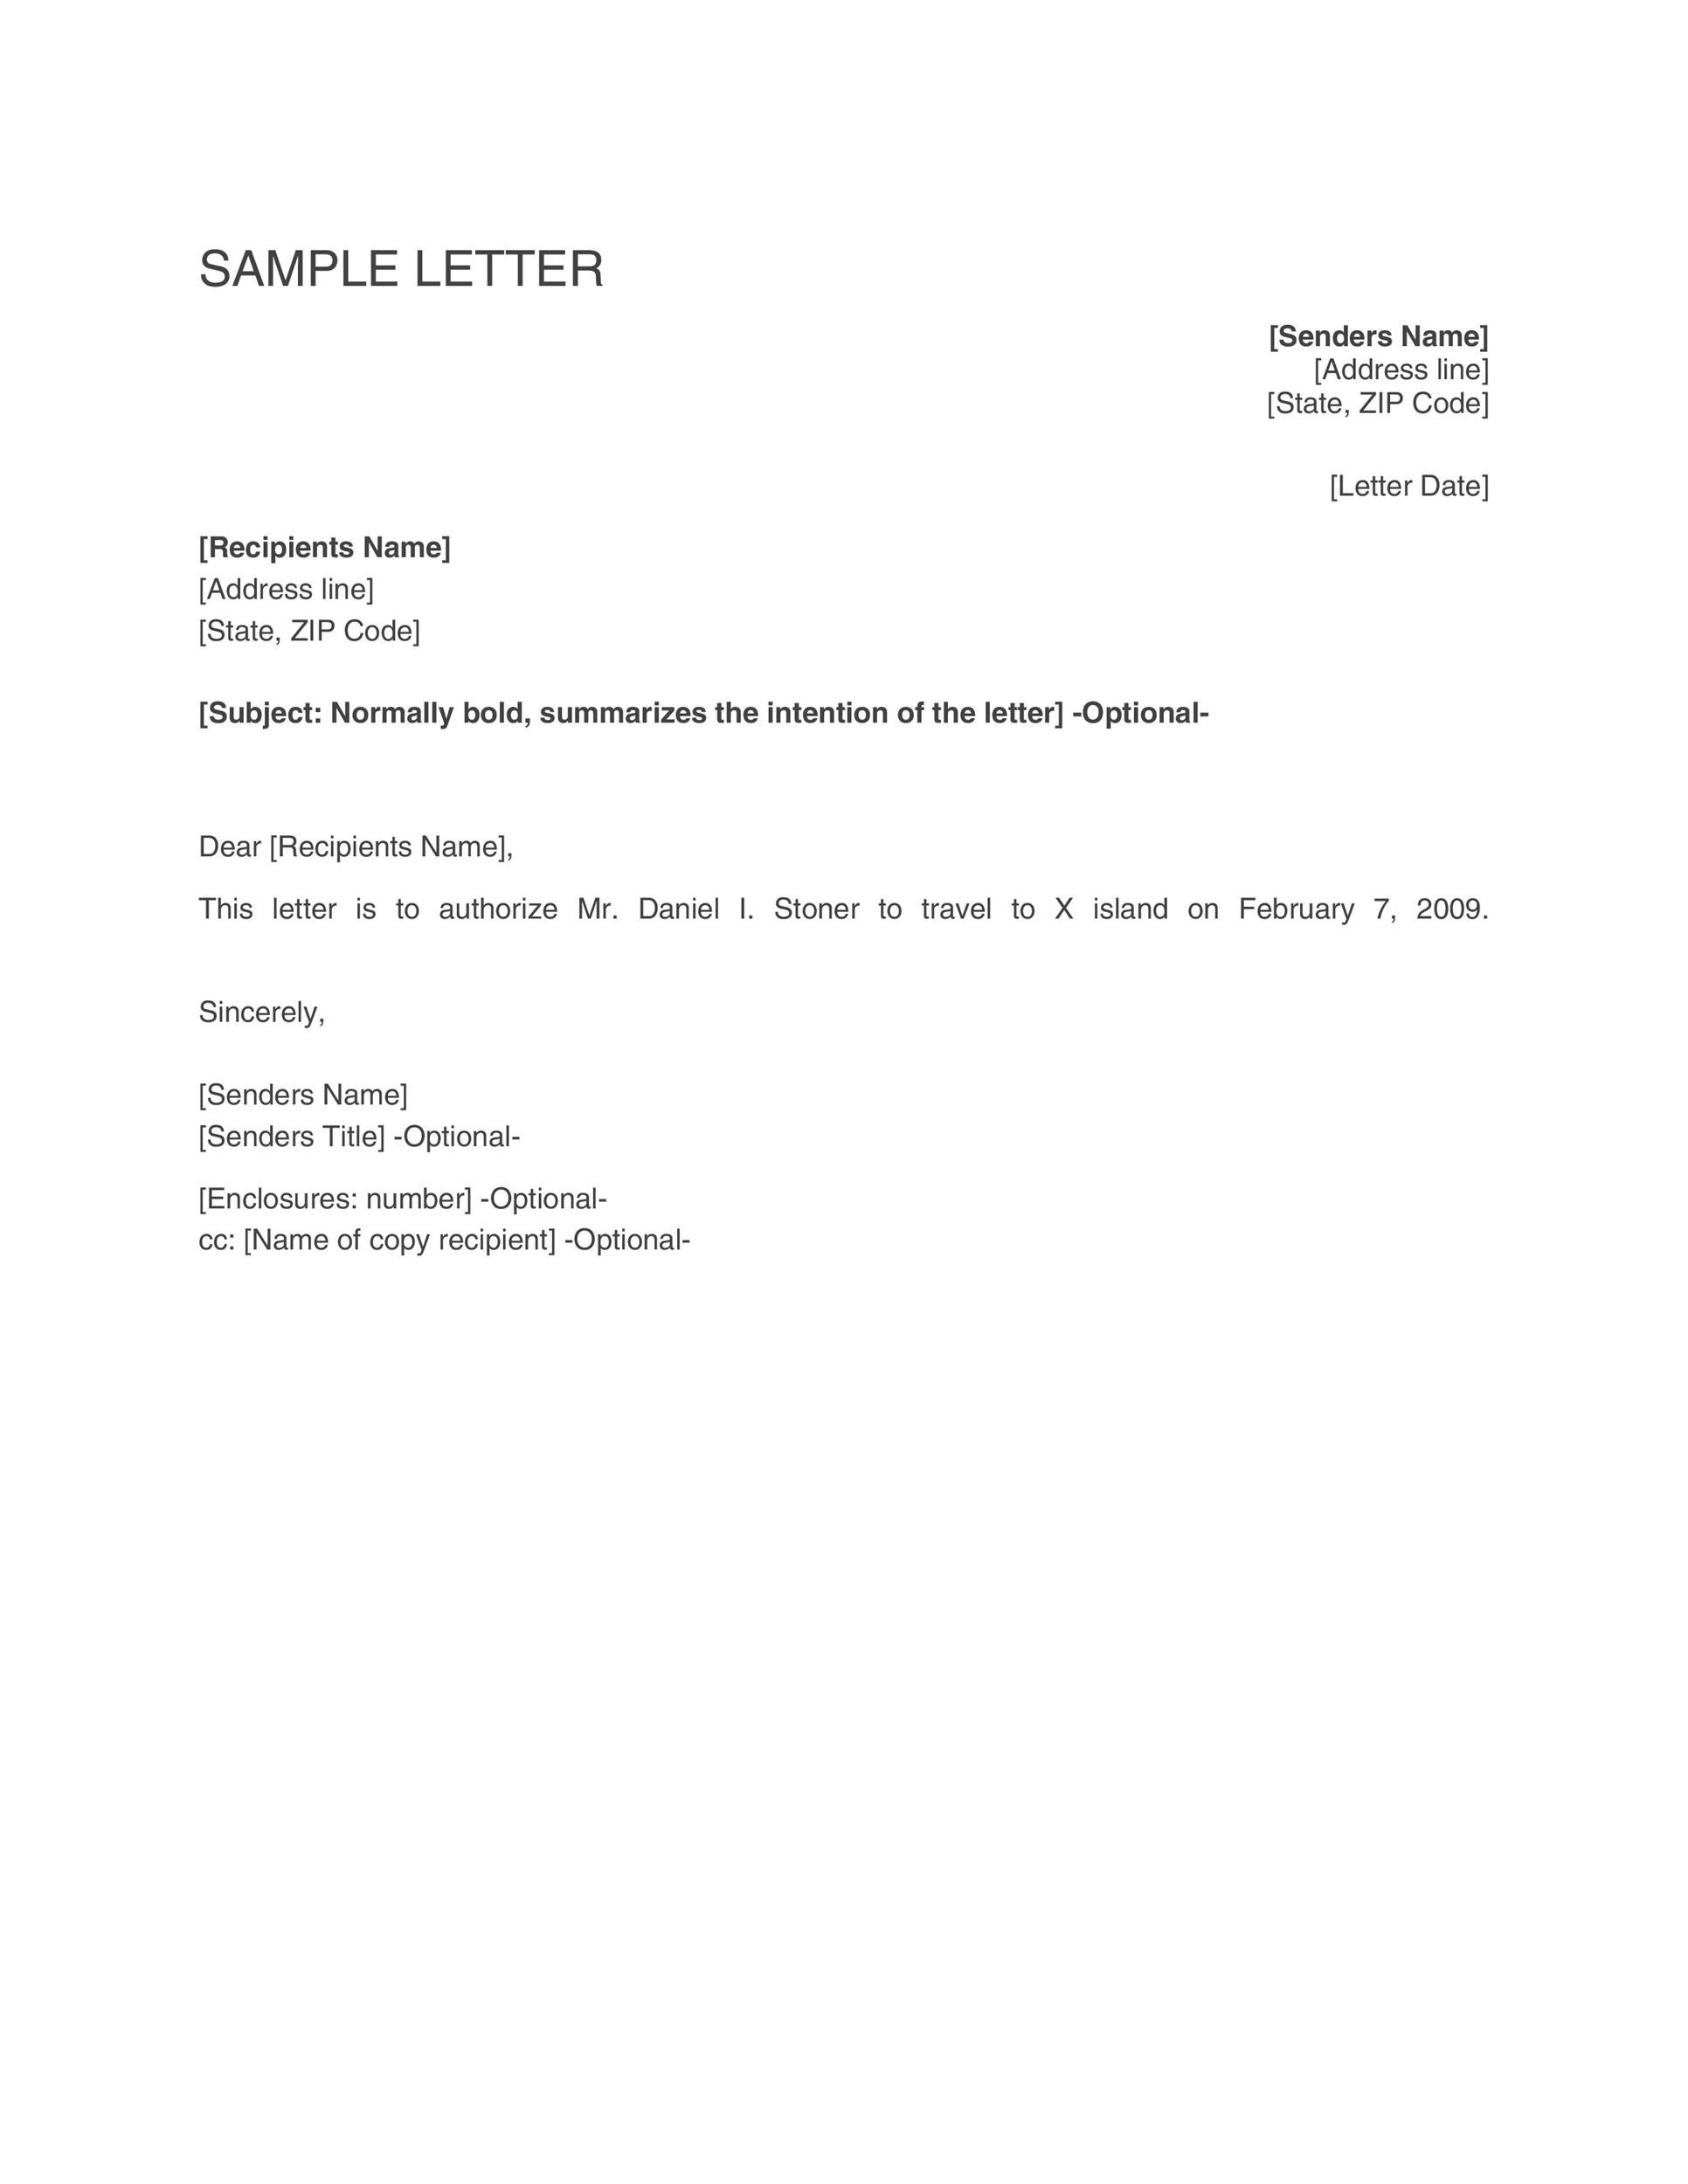 46 Authorization Letter Samples  Templates - Template Lab - permission to travel letter template